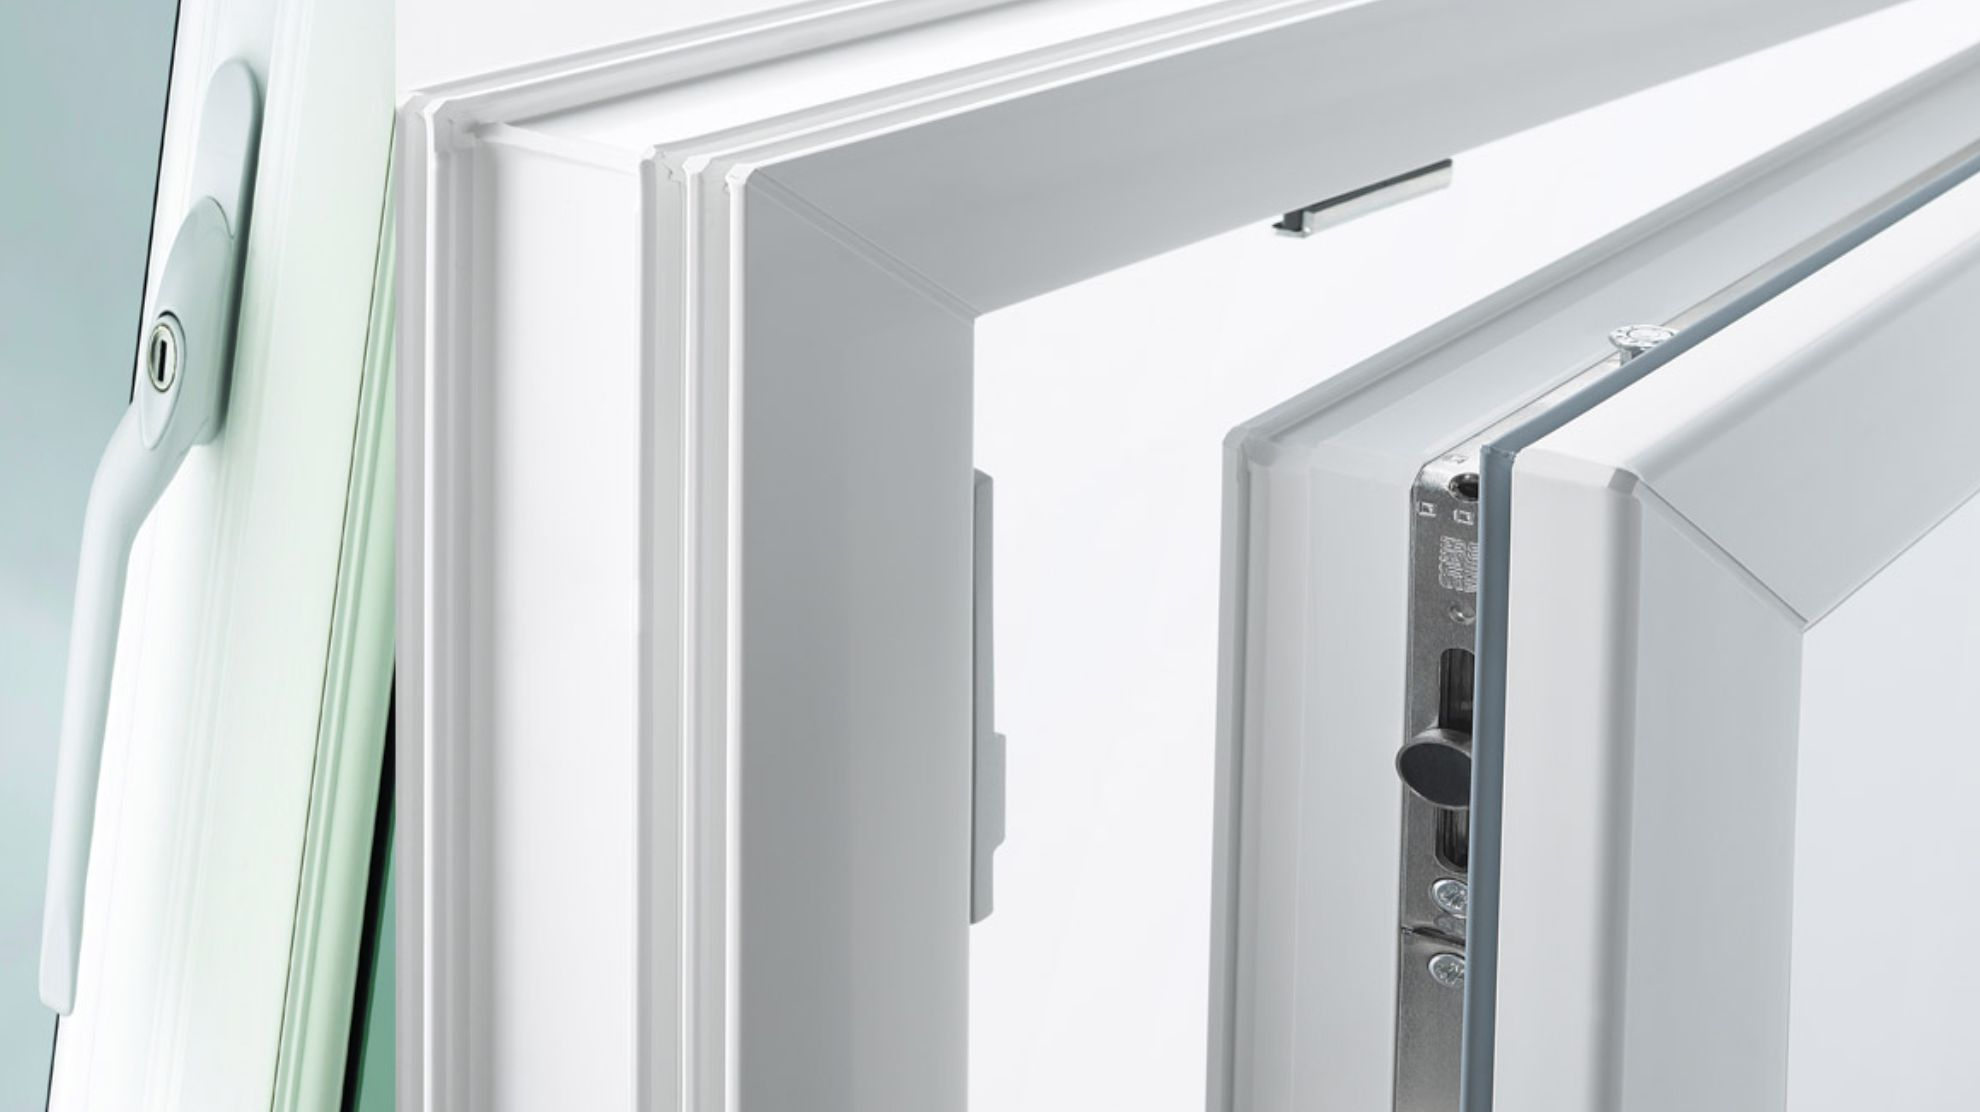 Double Glazed Windows - Real Benefits in 2020